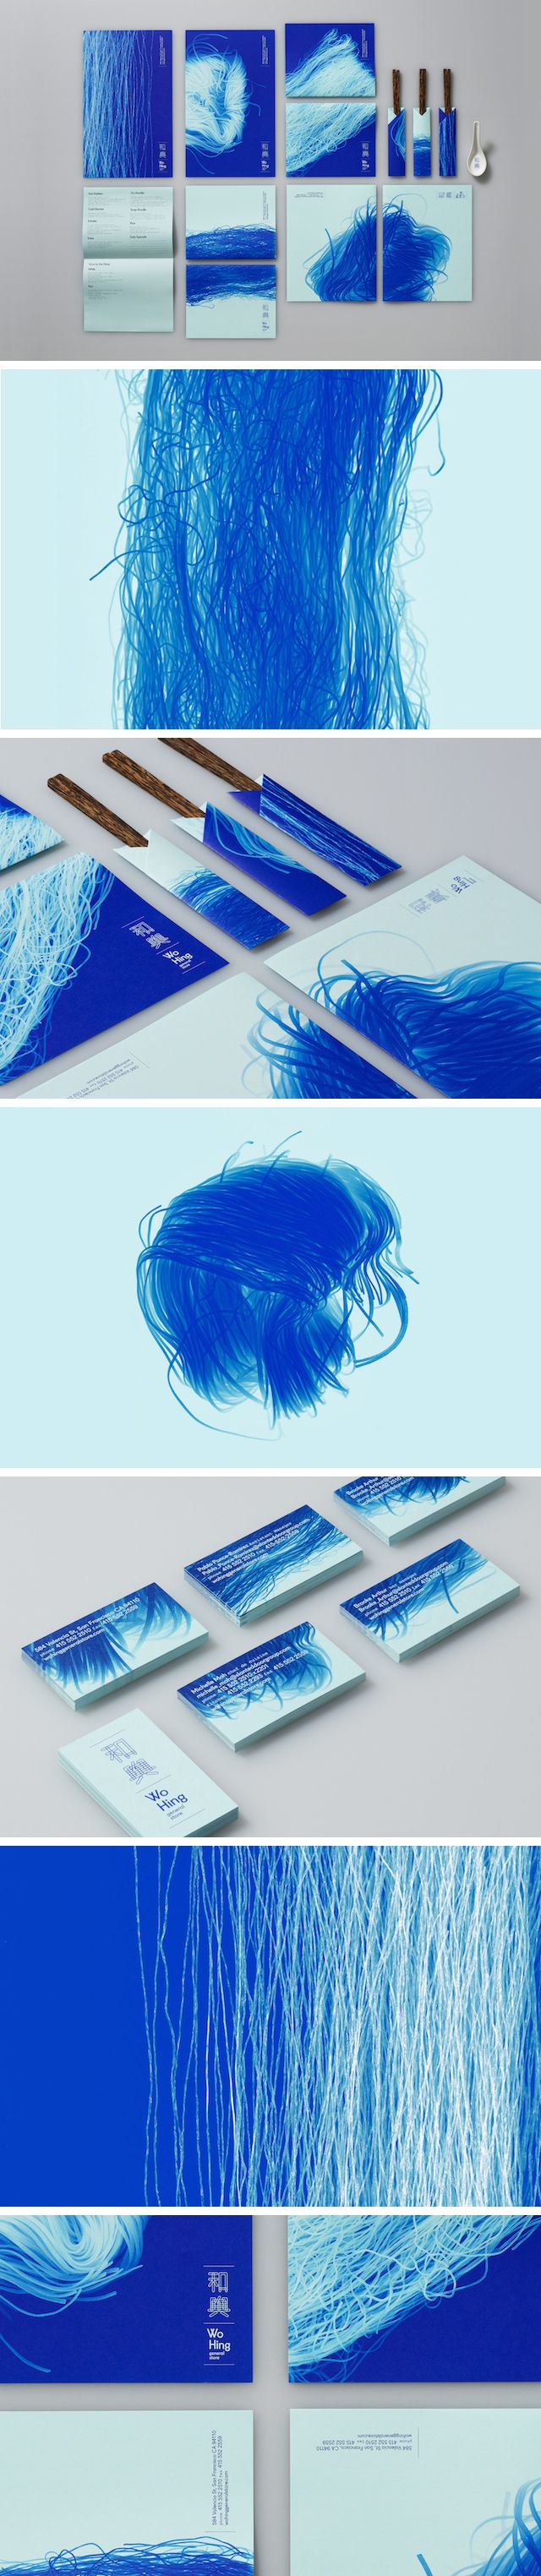 Identity of Wo Hing General Store : a Vietnamese restaurant. The logo and visual represent noodles taken by a scanner to produce a blue monochrome and negative effect inspired by cyanotypes. The restaurant's neon was made with electroluminescent ink. By http://manualcreative.com